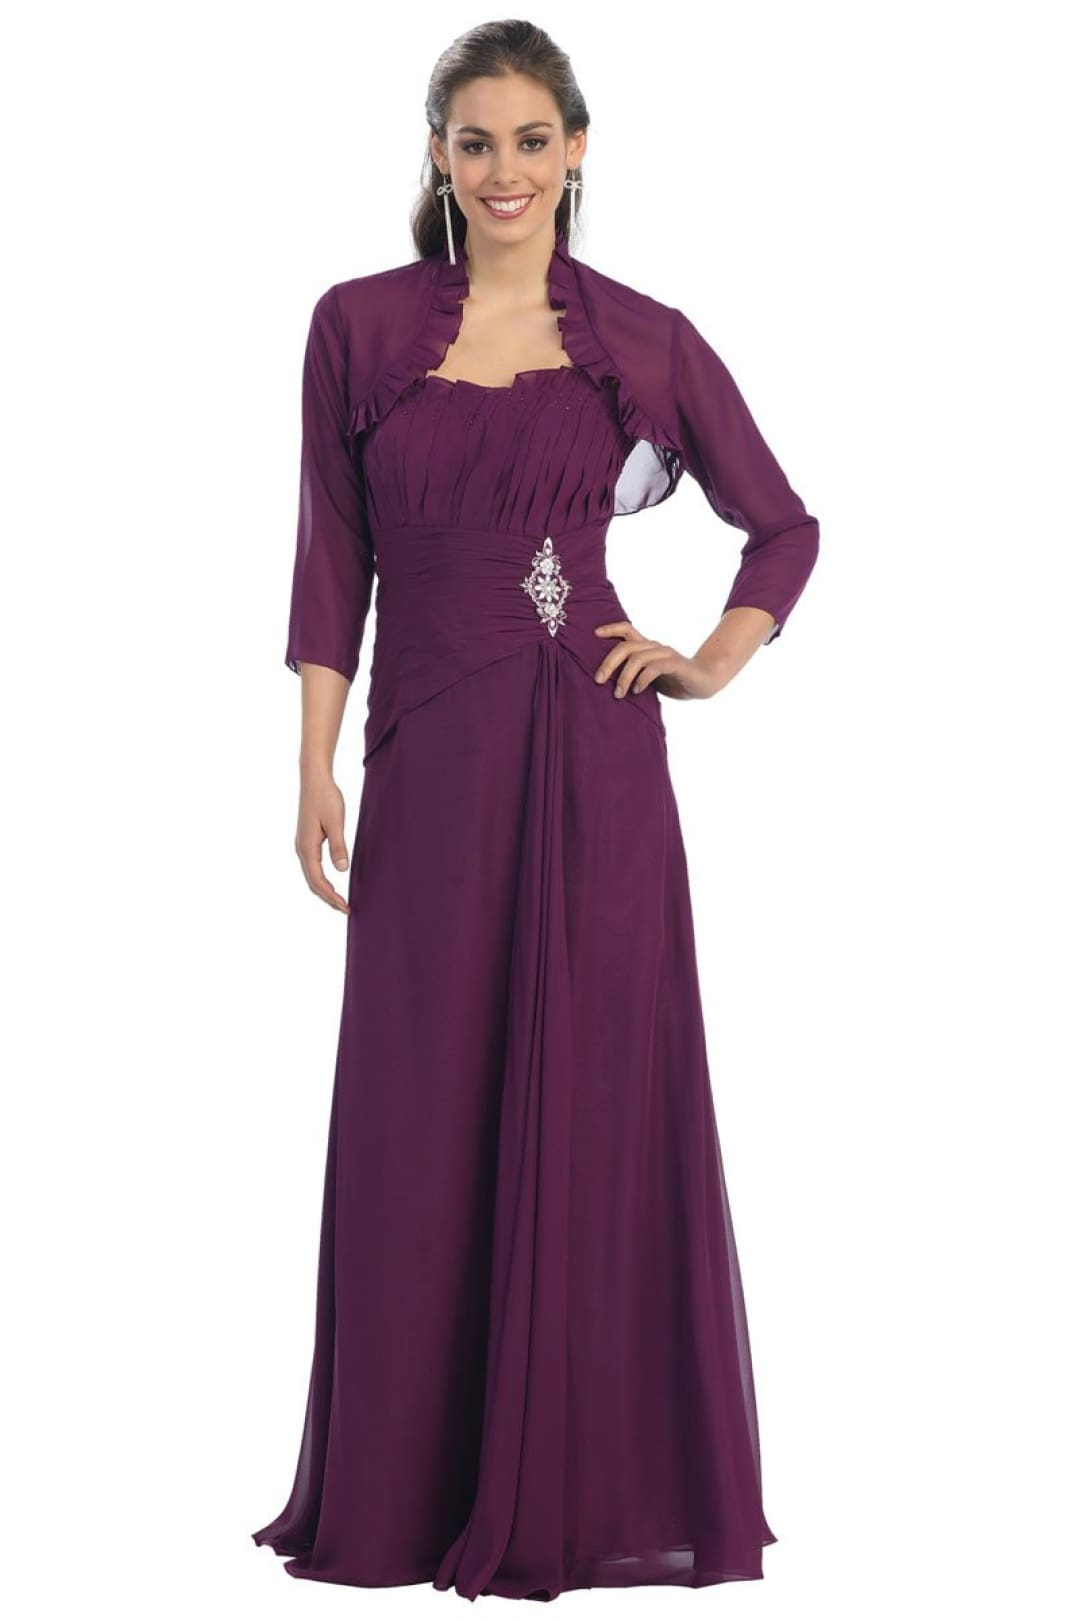 Nice Evening Gown - Eggplant / S